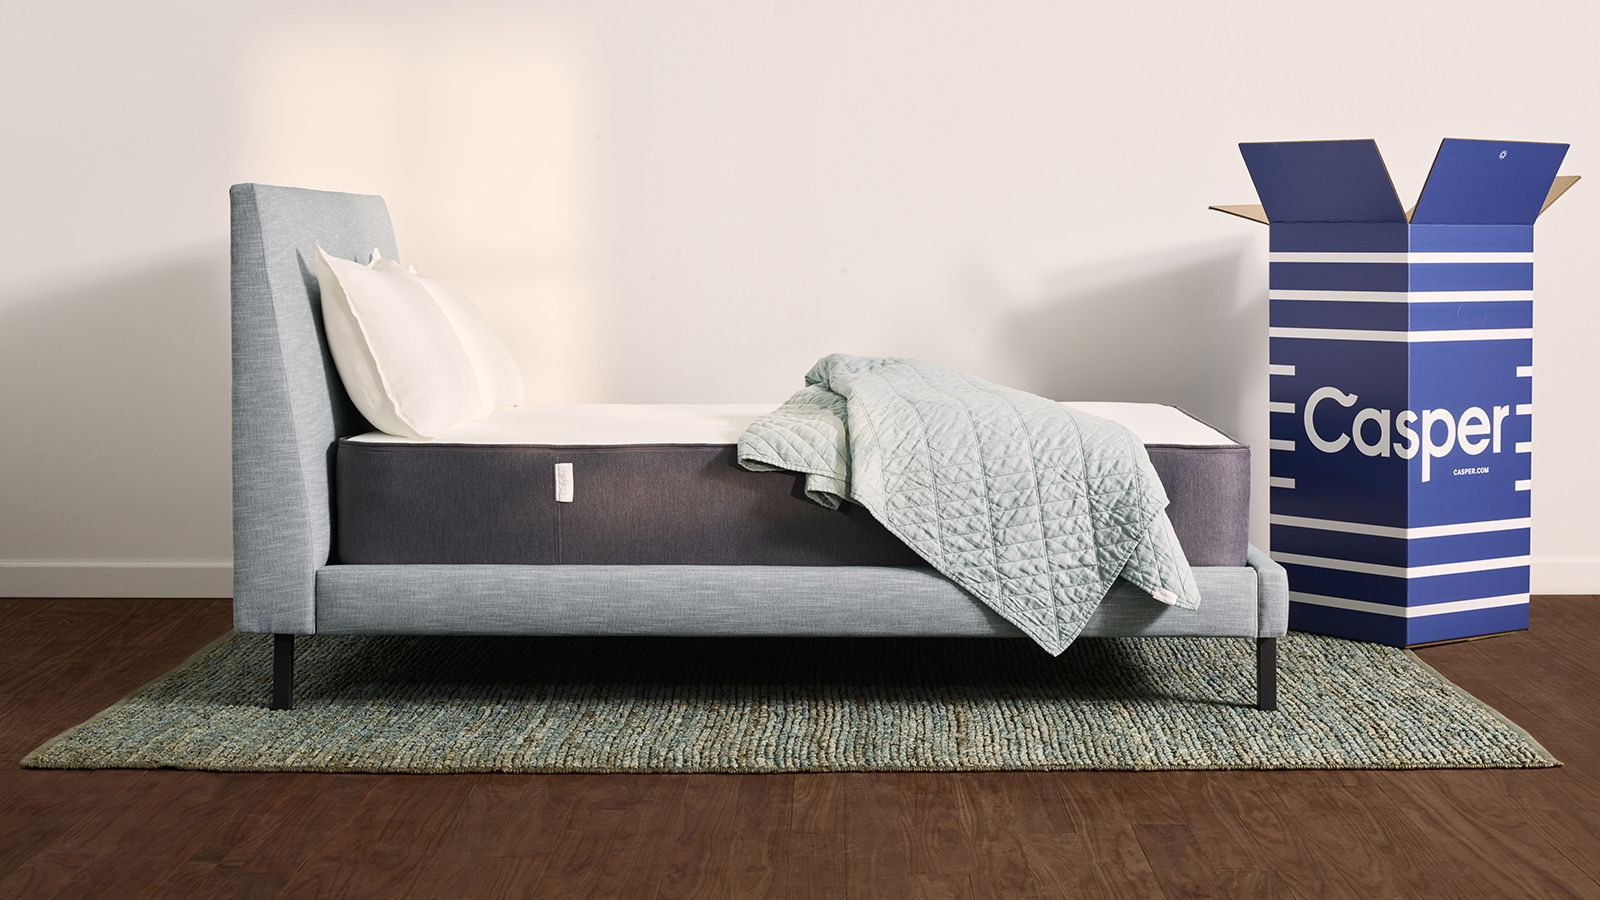 Best Mattress 2019 Purple Vs Casper Vs Leesa Vs Tuft Needle Top Ten Reviews Casper Mattress Casper Mattress Reviews Hybrid Mattress Reviews